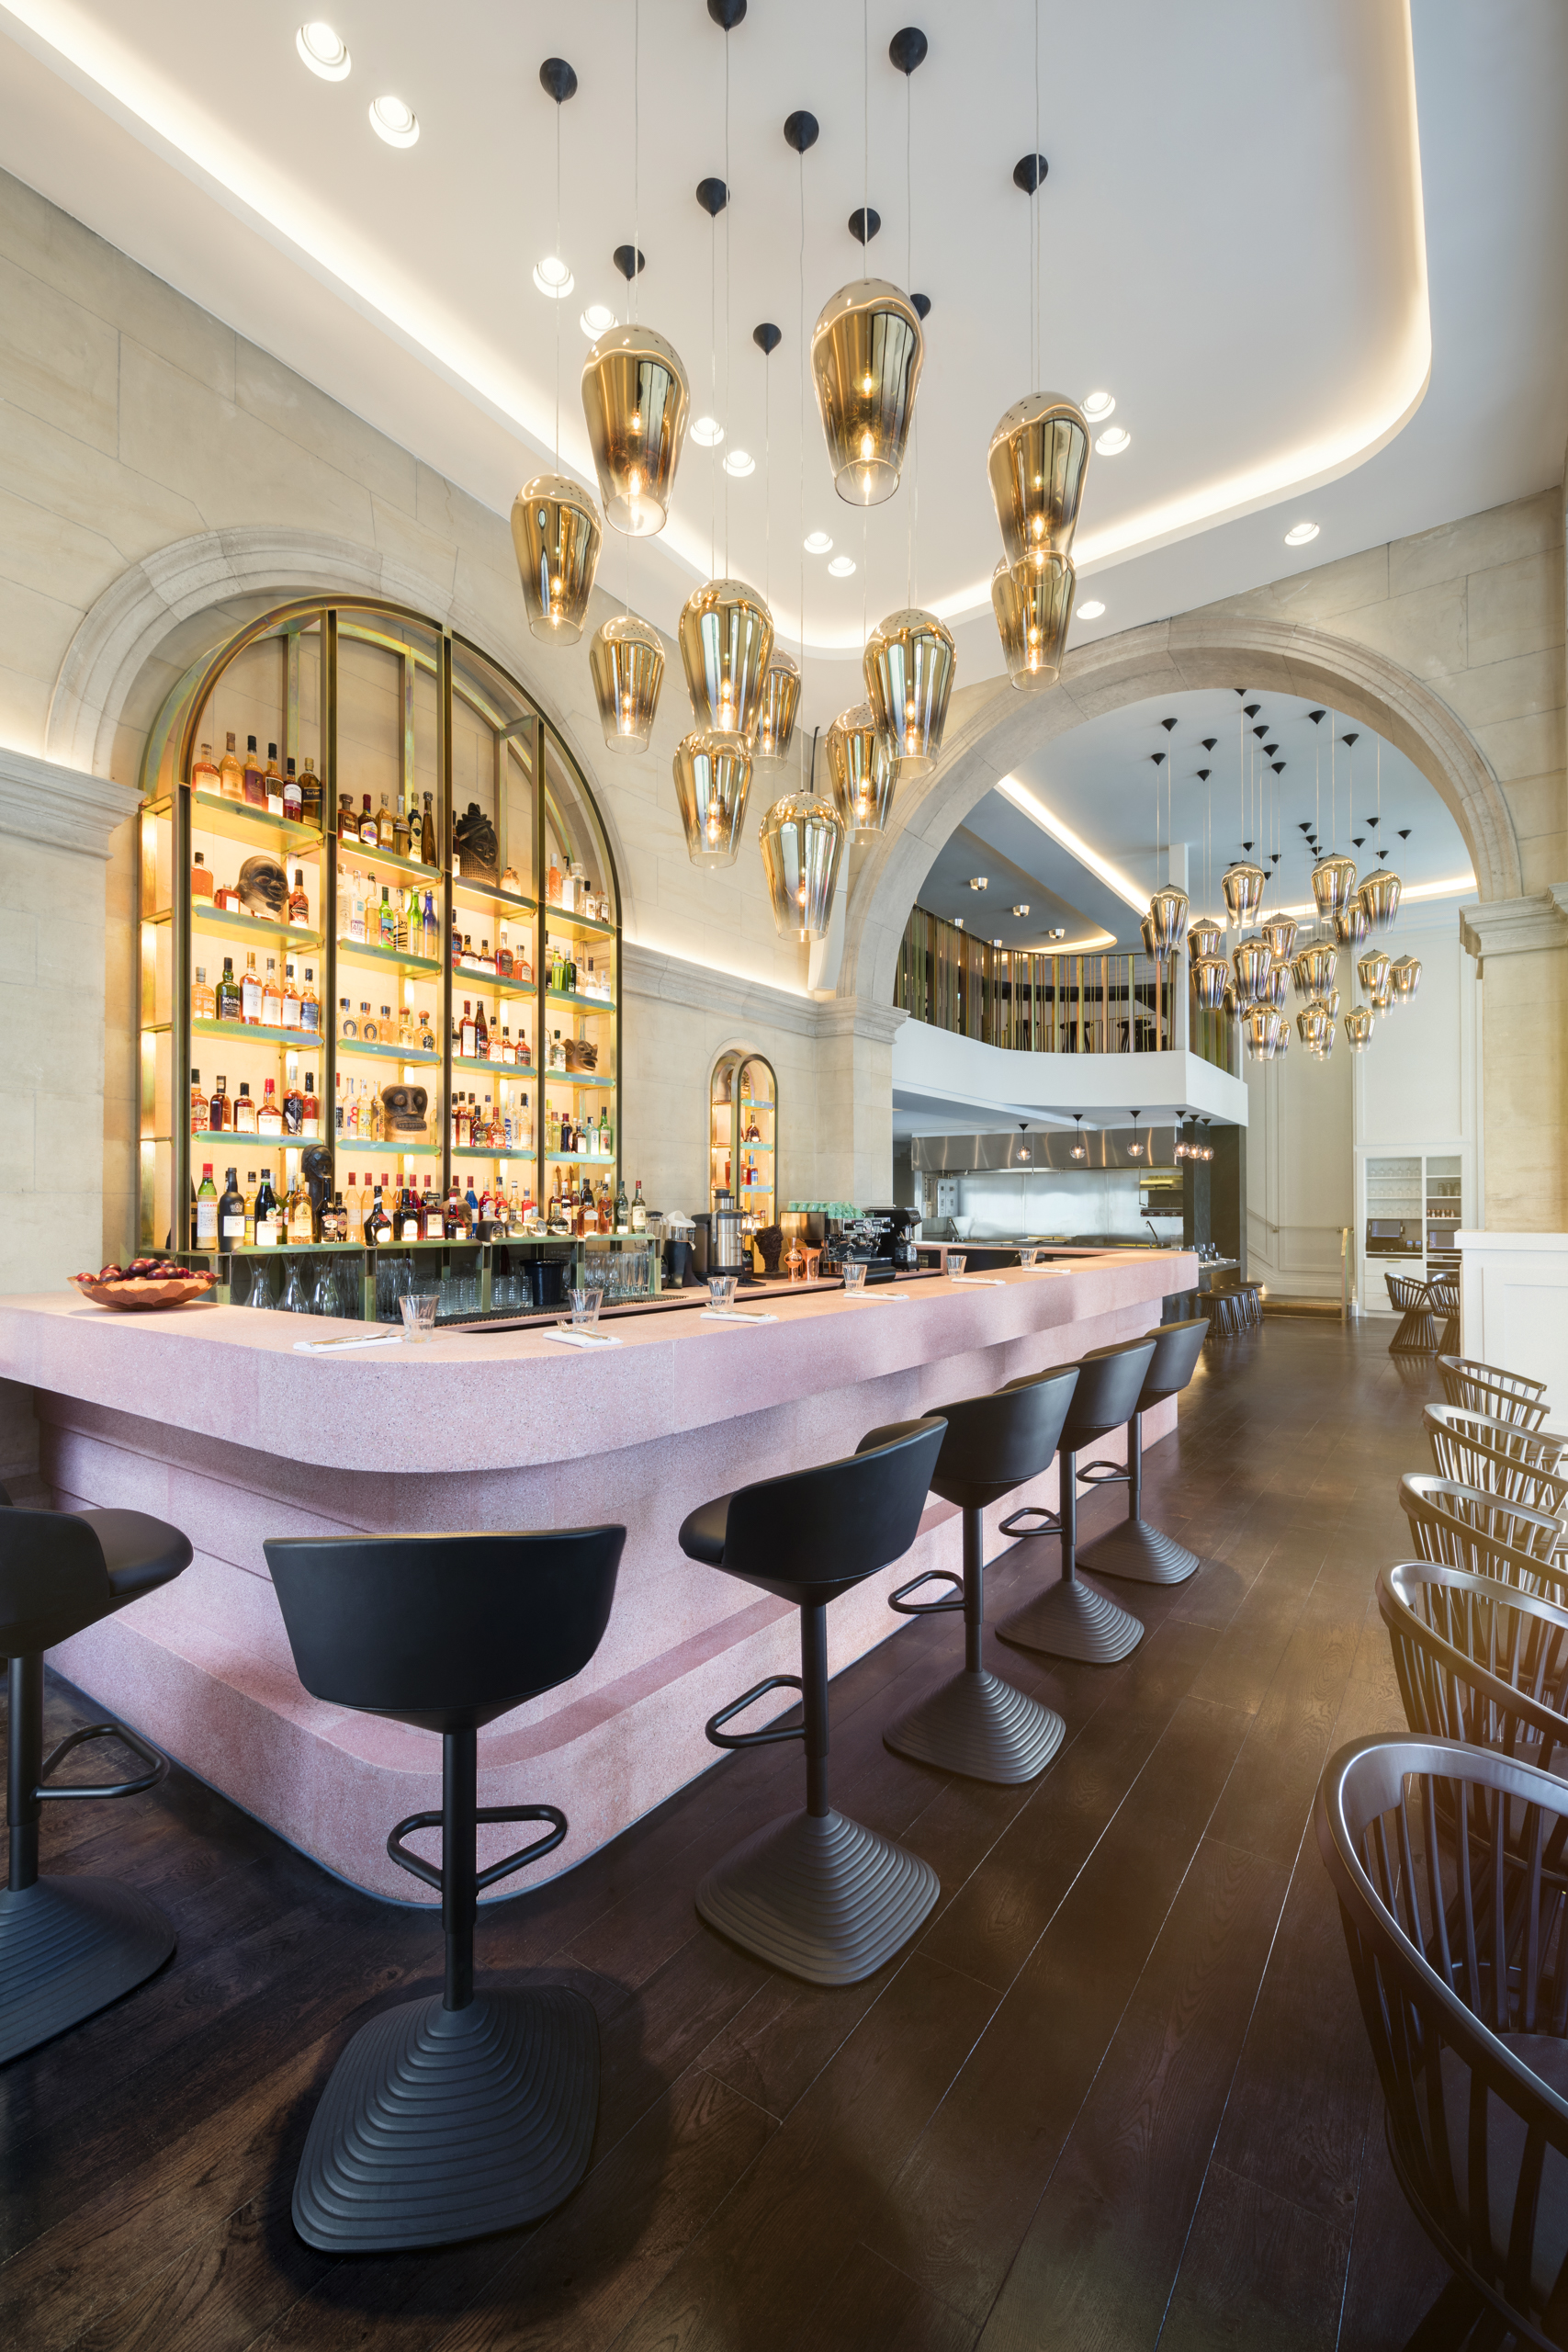 Tom dixon designs interiors for new london restaurant